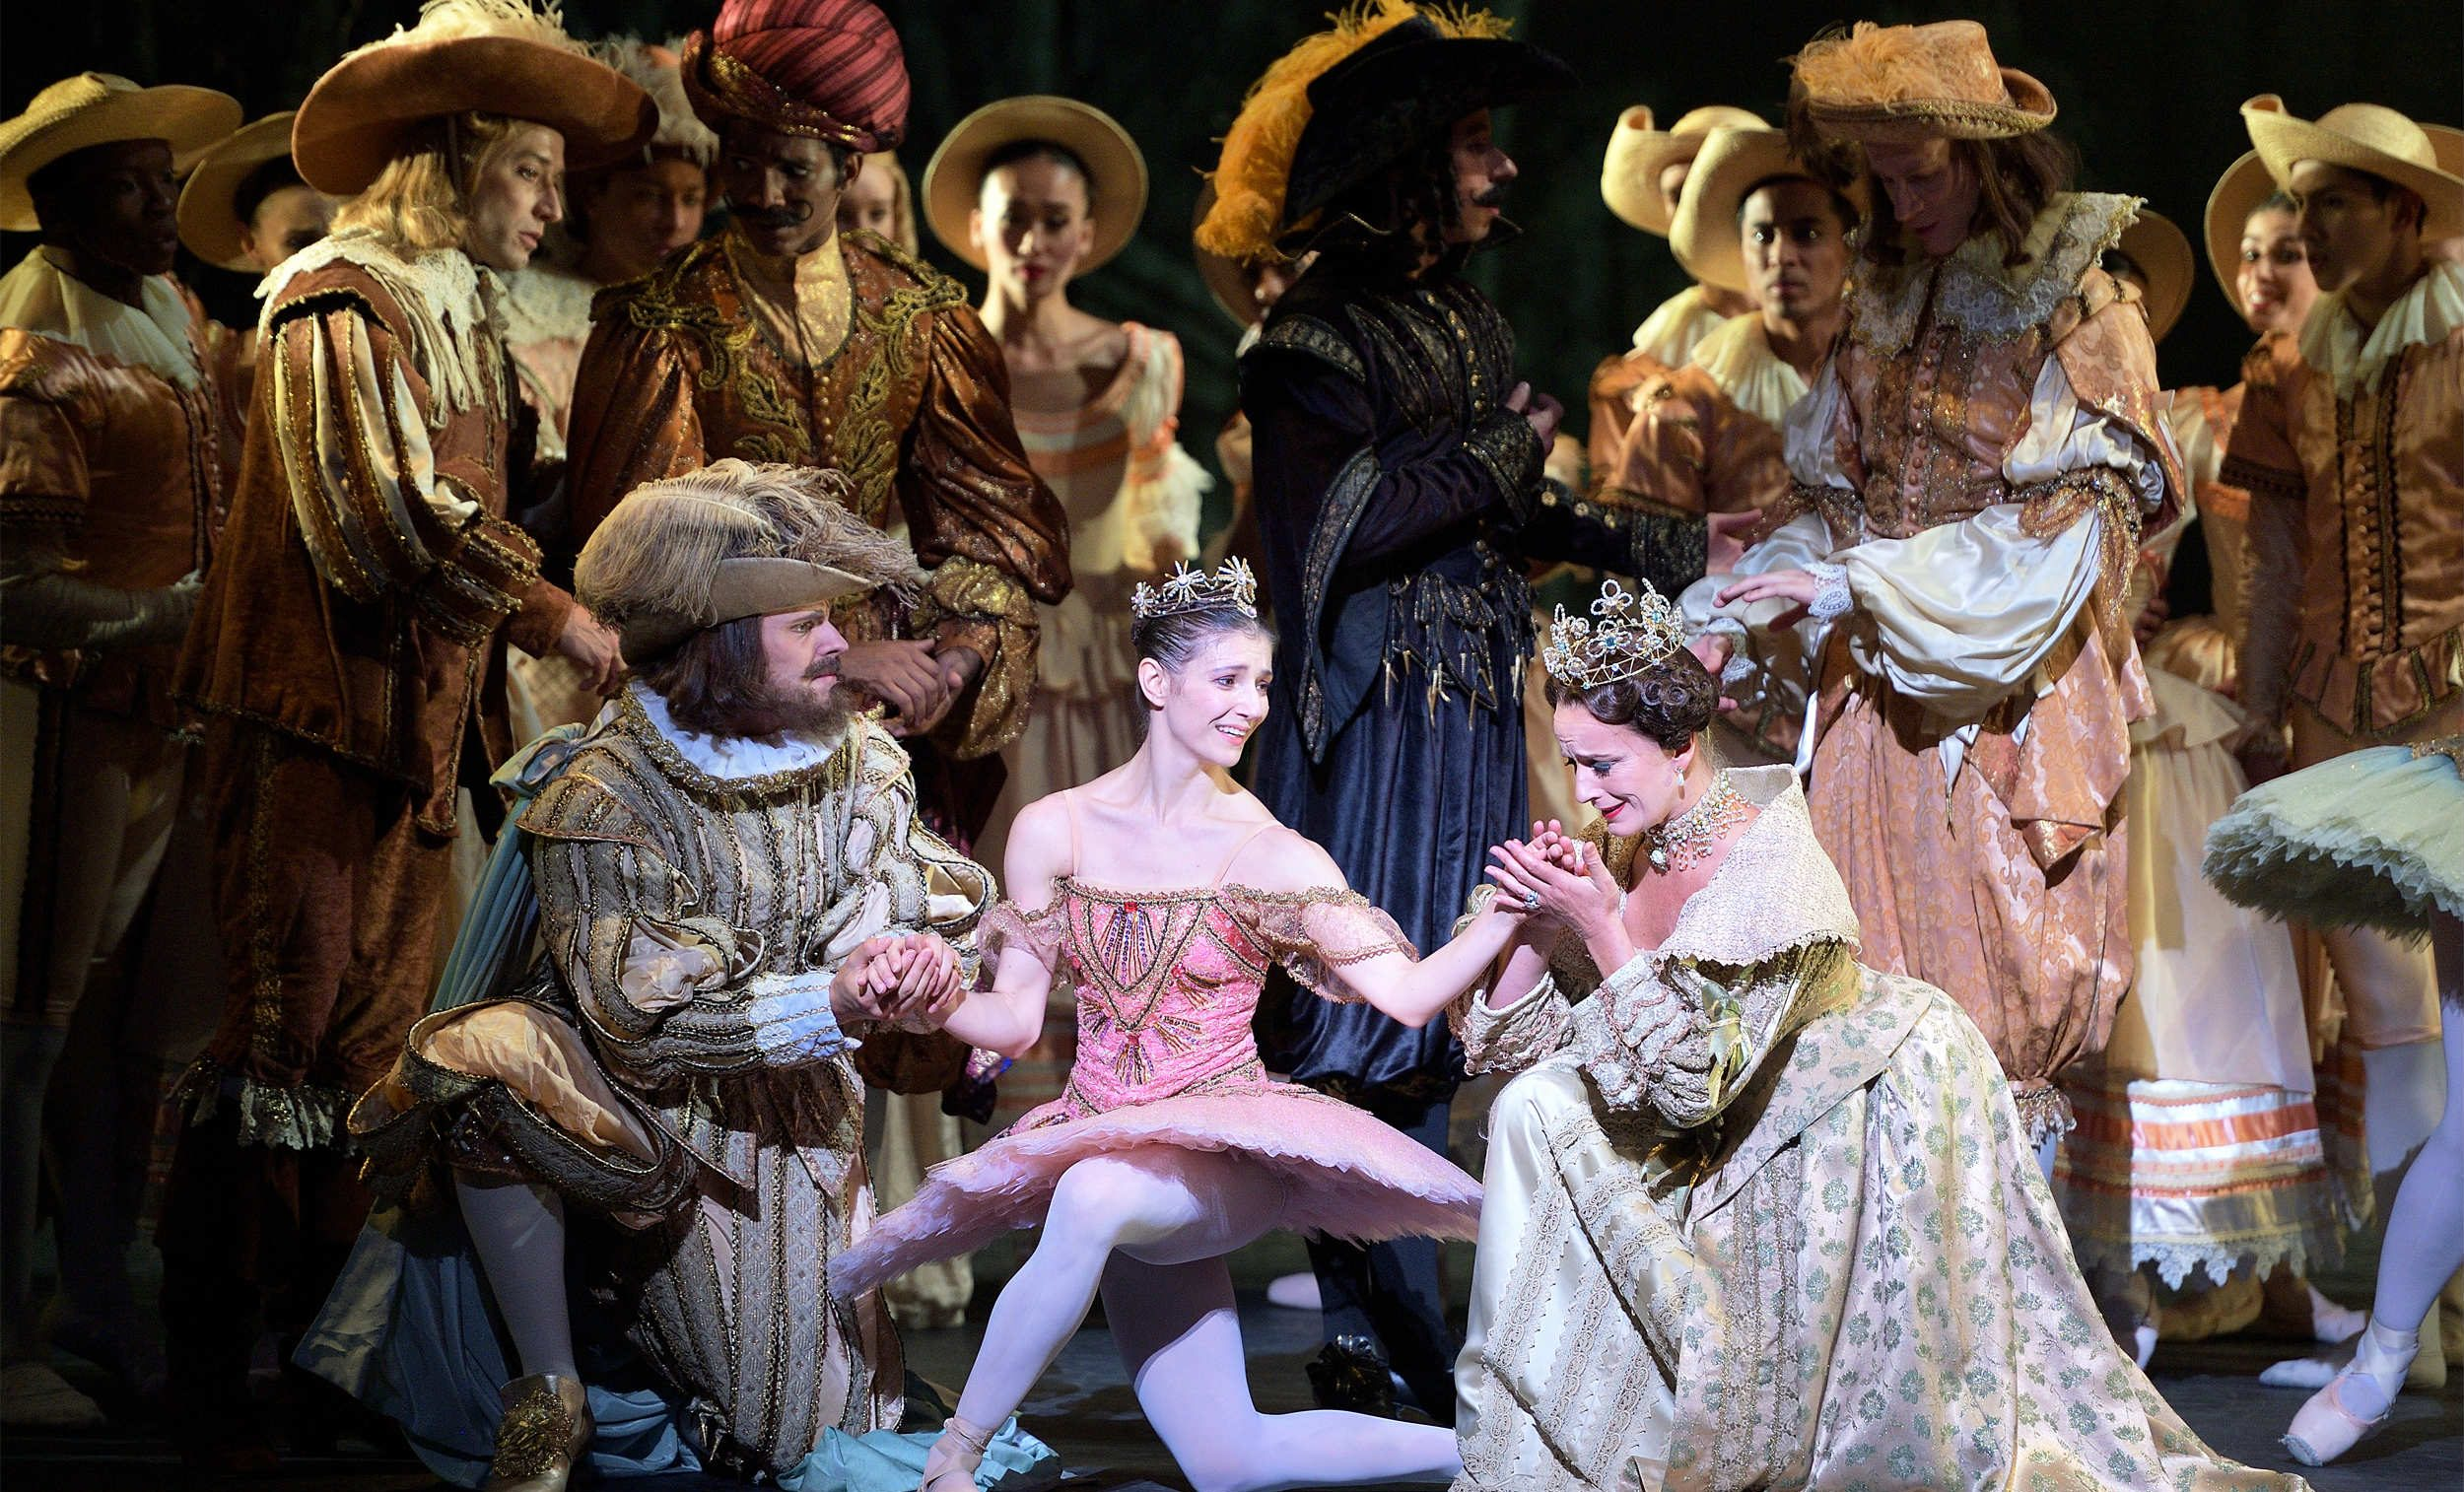 WEBSITE - Grant Rae, Alina Cojocaru and Jane Haworth in The Sleeping Beauty (c) Laurent Liotardo